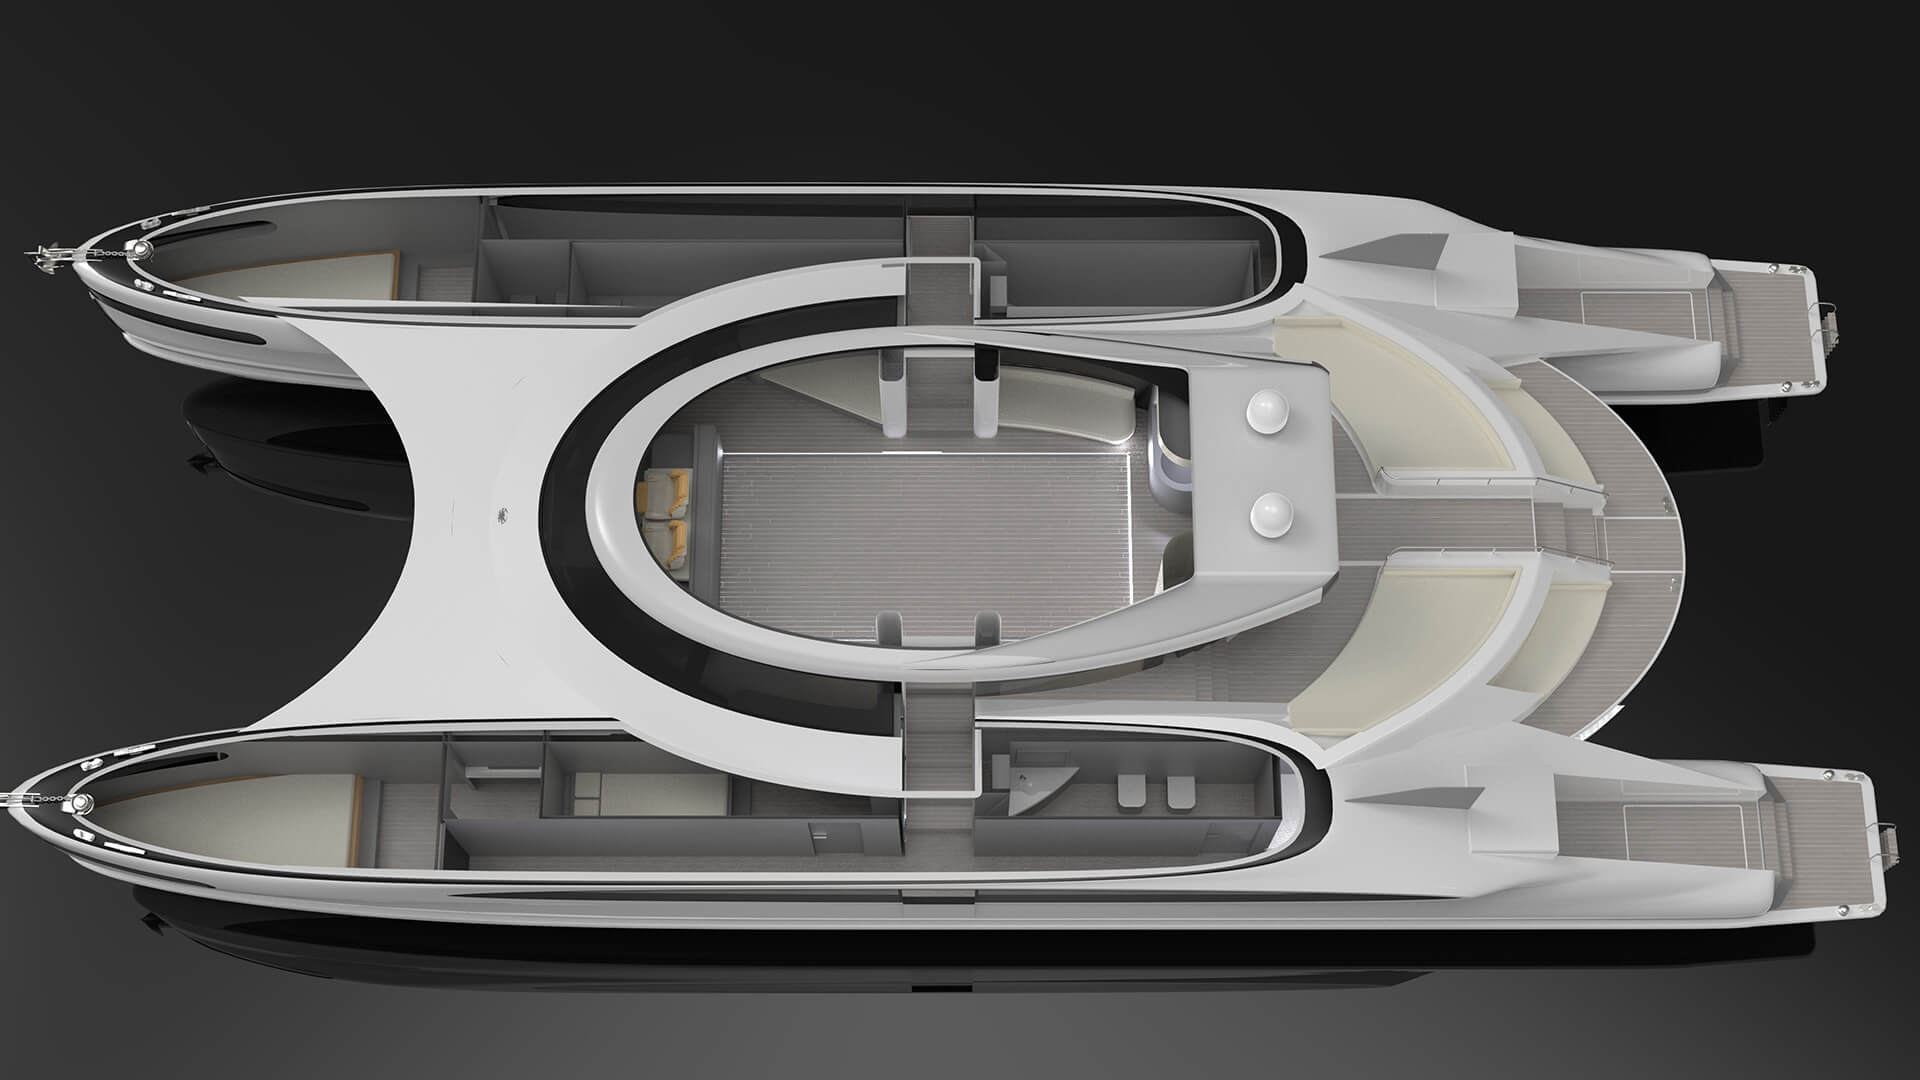 Top section slice showing interiors of the hull and central space | Pagurus Amphibious Catamaran | Pierpaolo Lazzarini | STIRworld